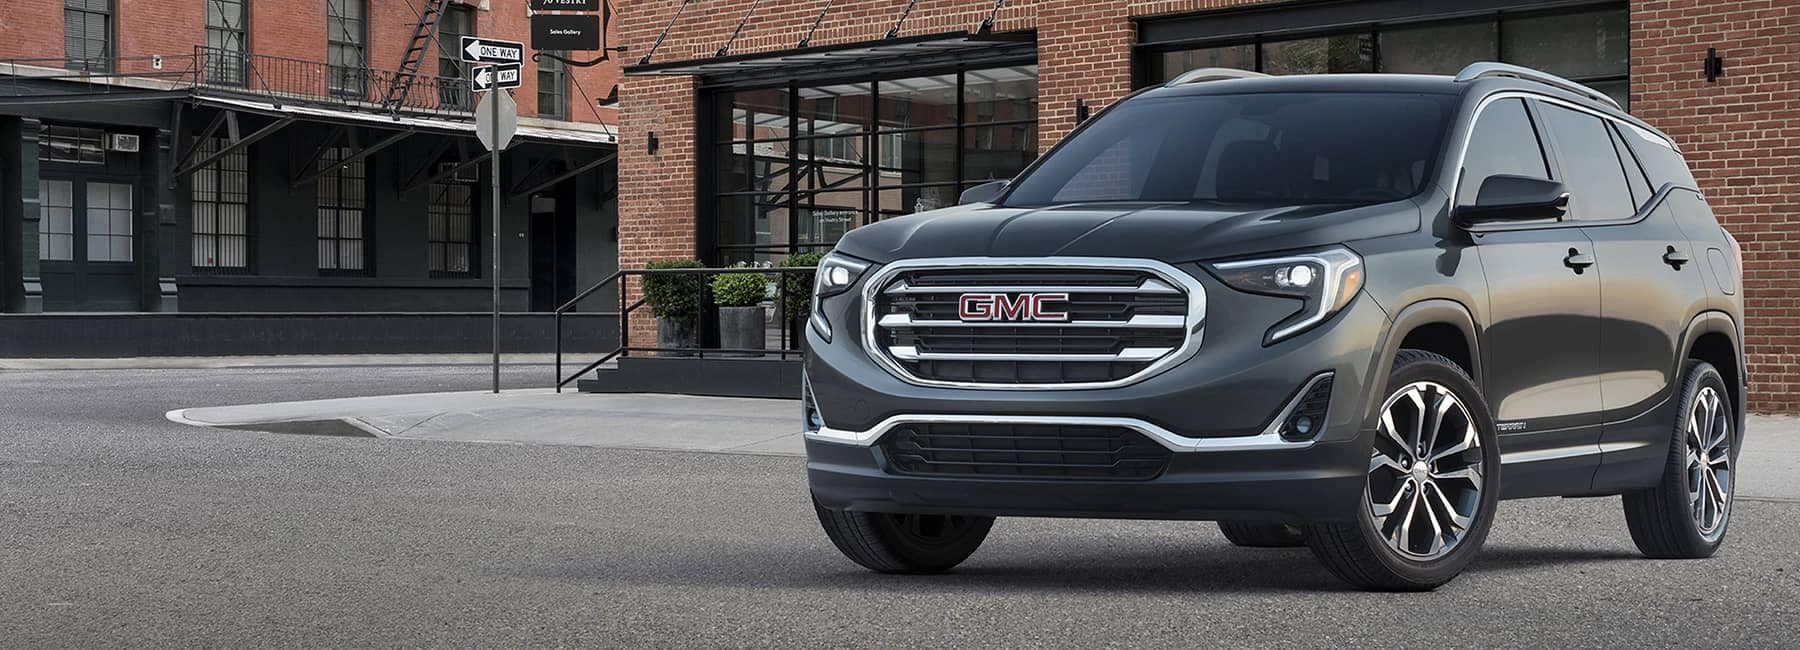 2020 GMC Terrain Angled View Parked in front of Building